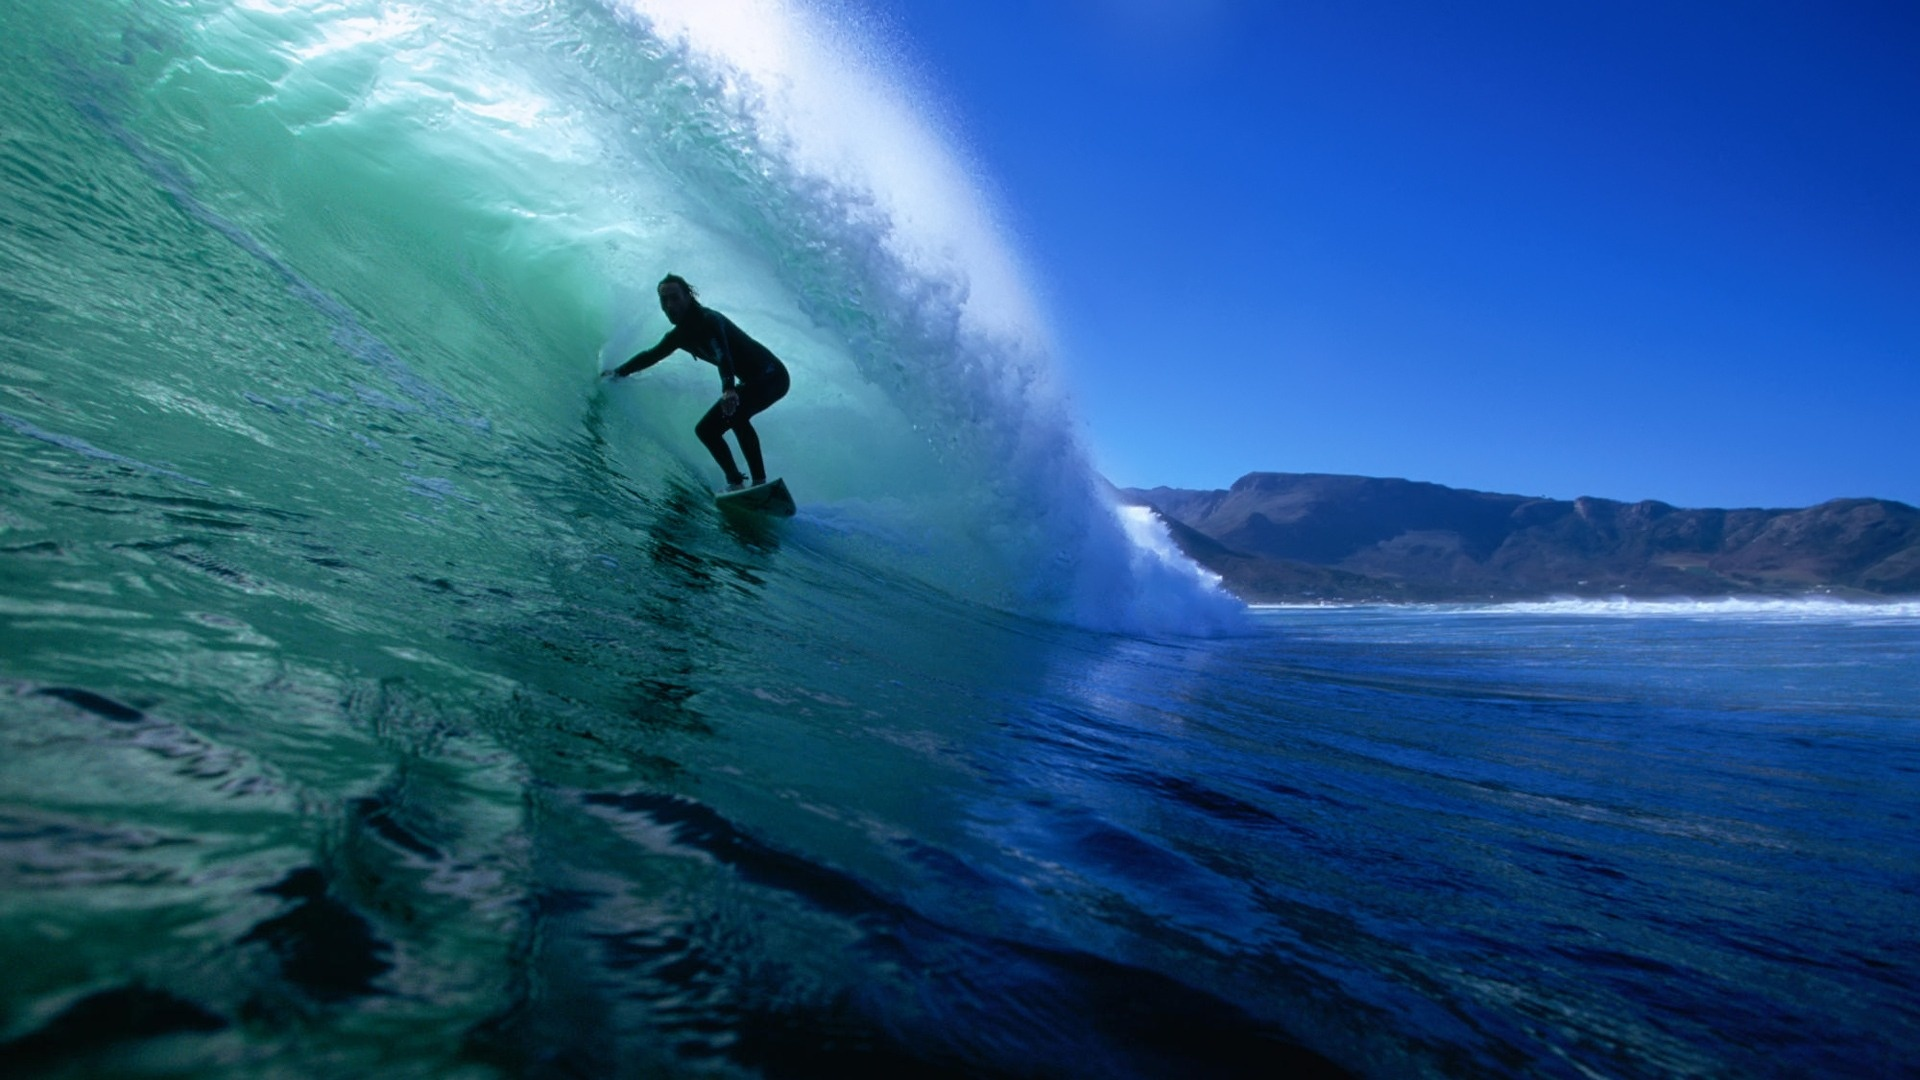 surfing wallpaper cool desktop background share this cool desktop 1920x1080